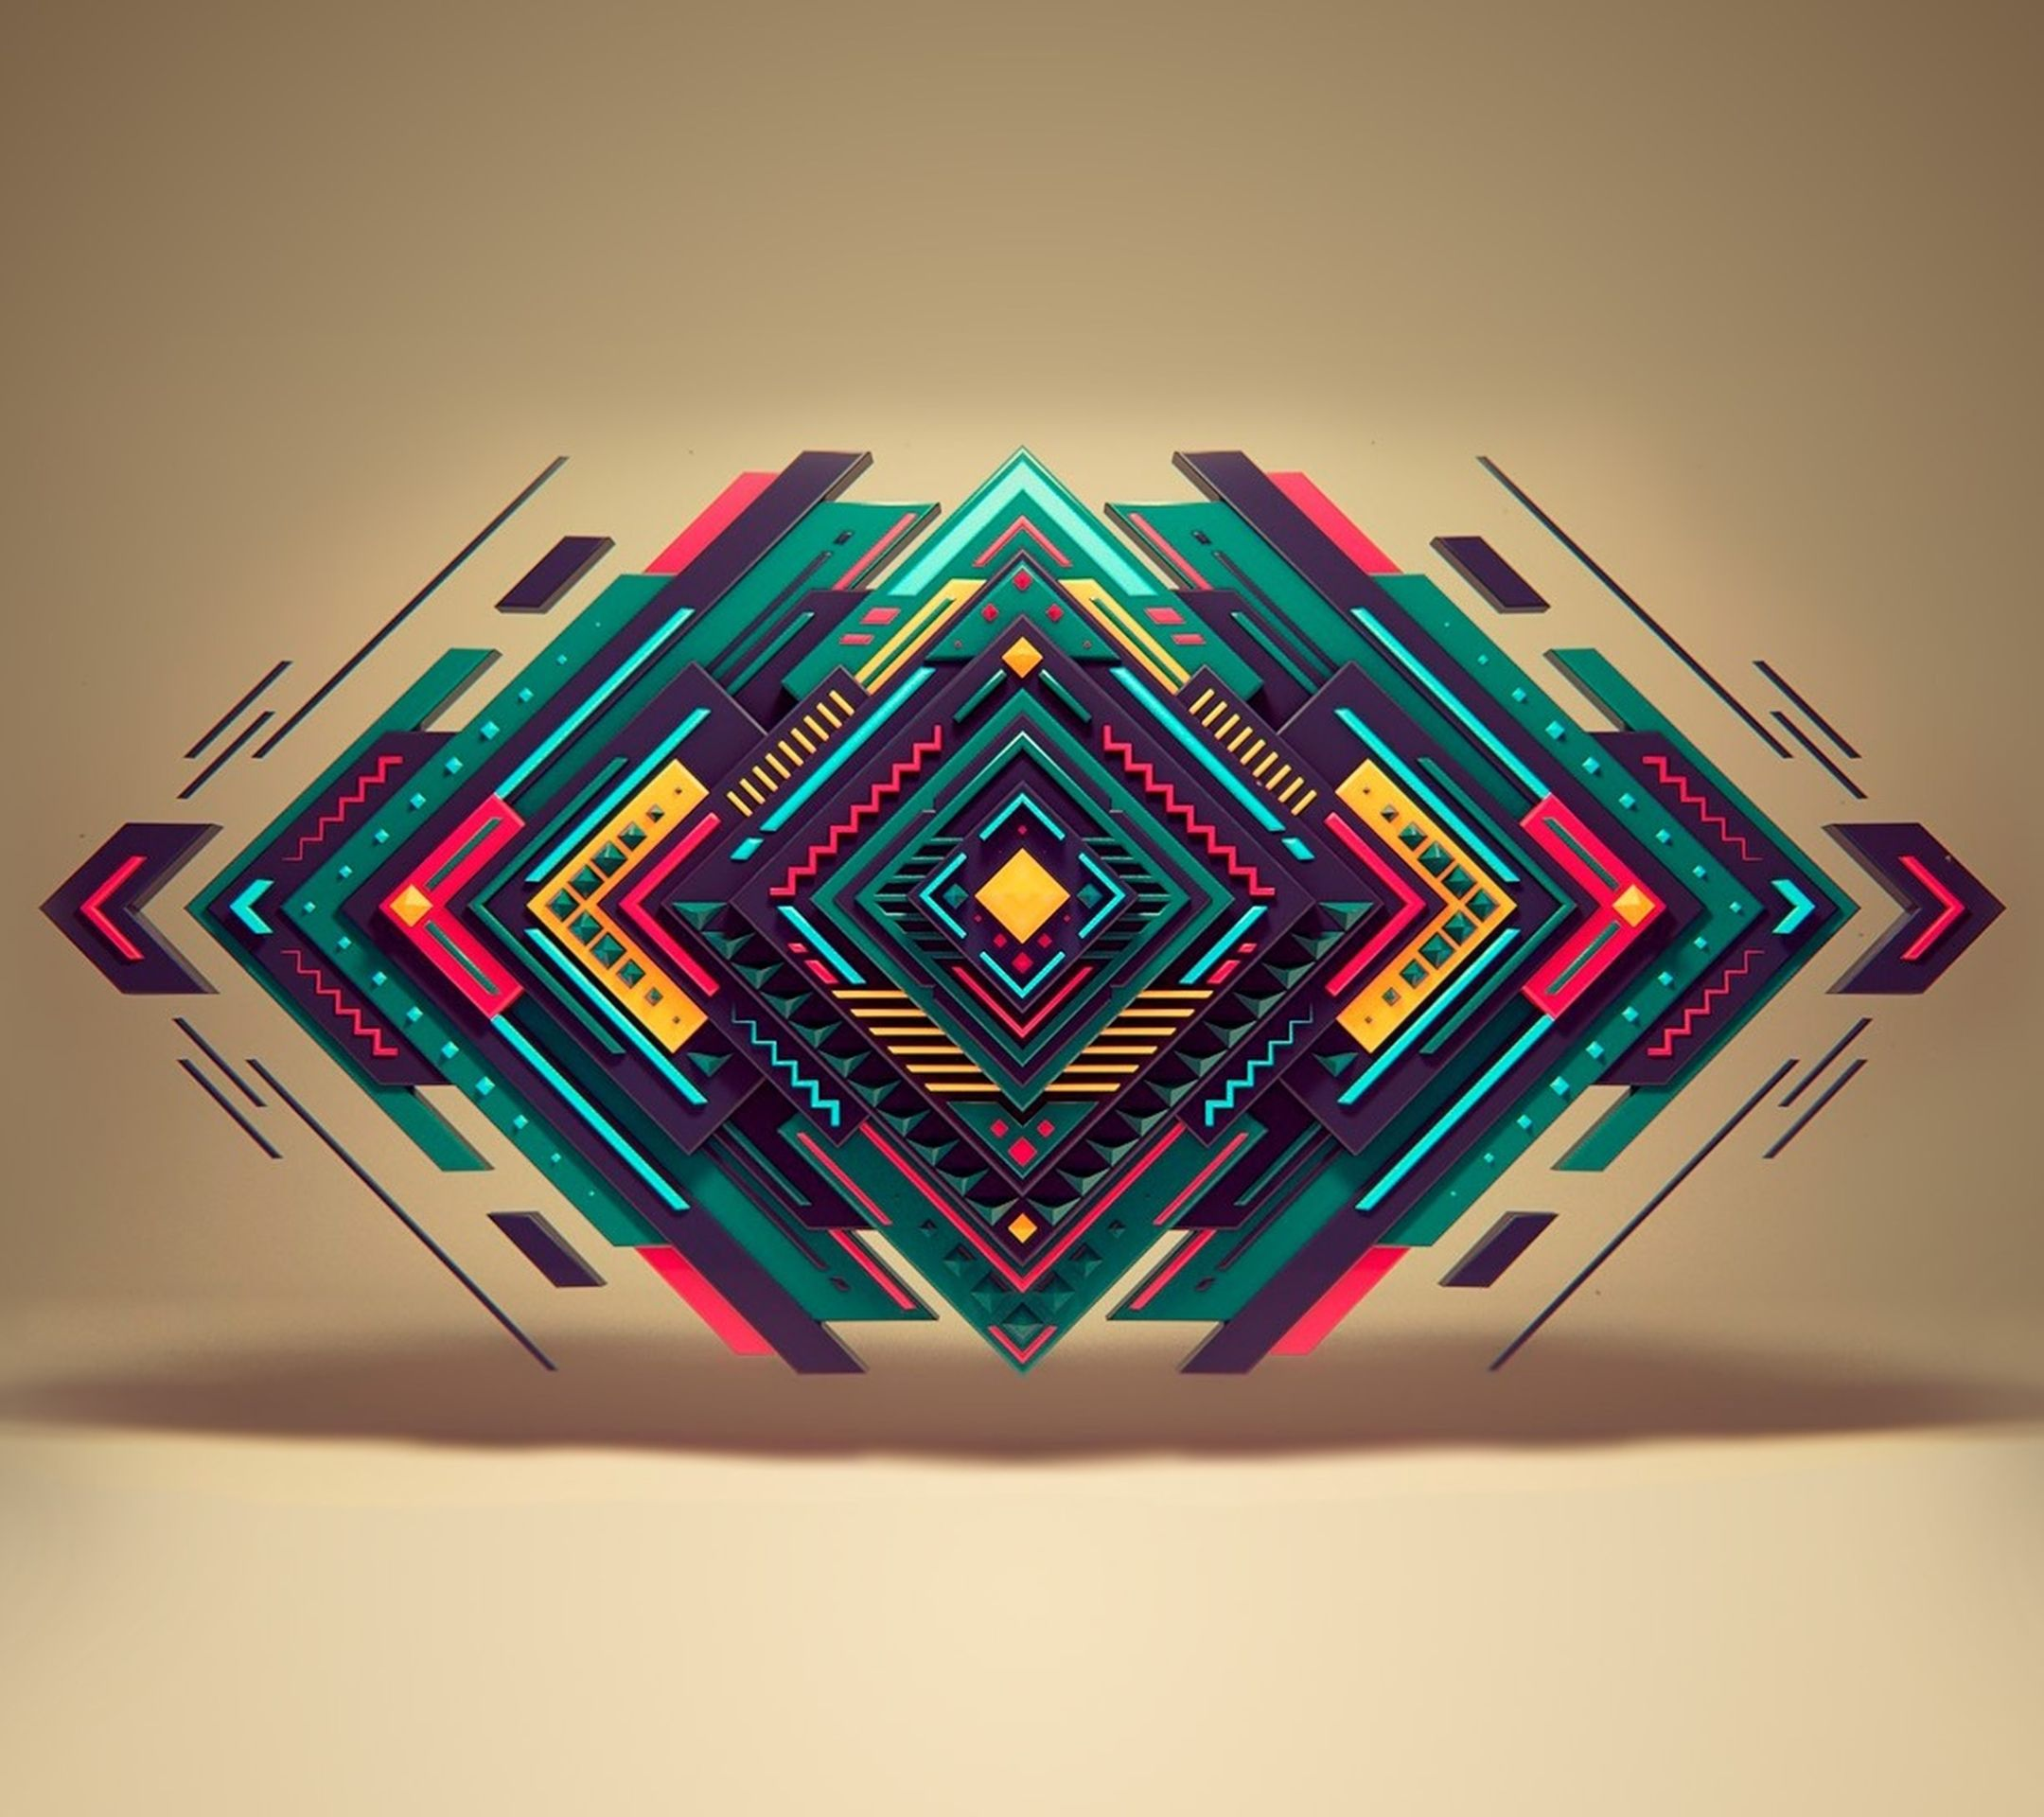 How to use scrapbook on galaxy s5 - Geometry Hd Samsung Galaxy S5 Wallpapers Jpg 2160